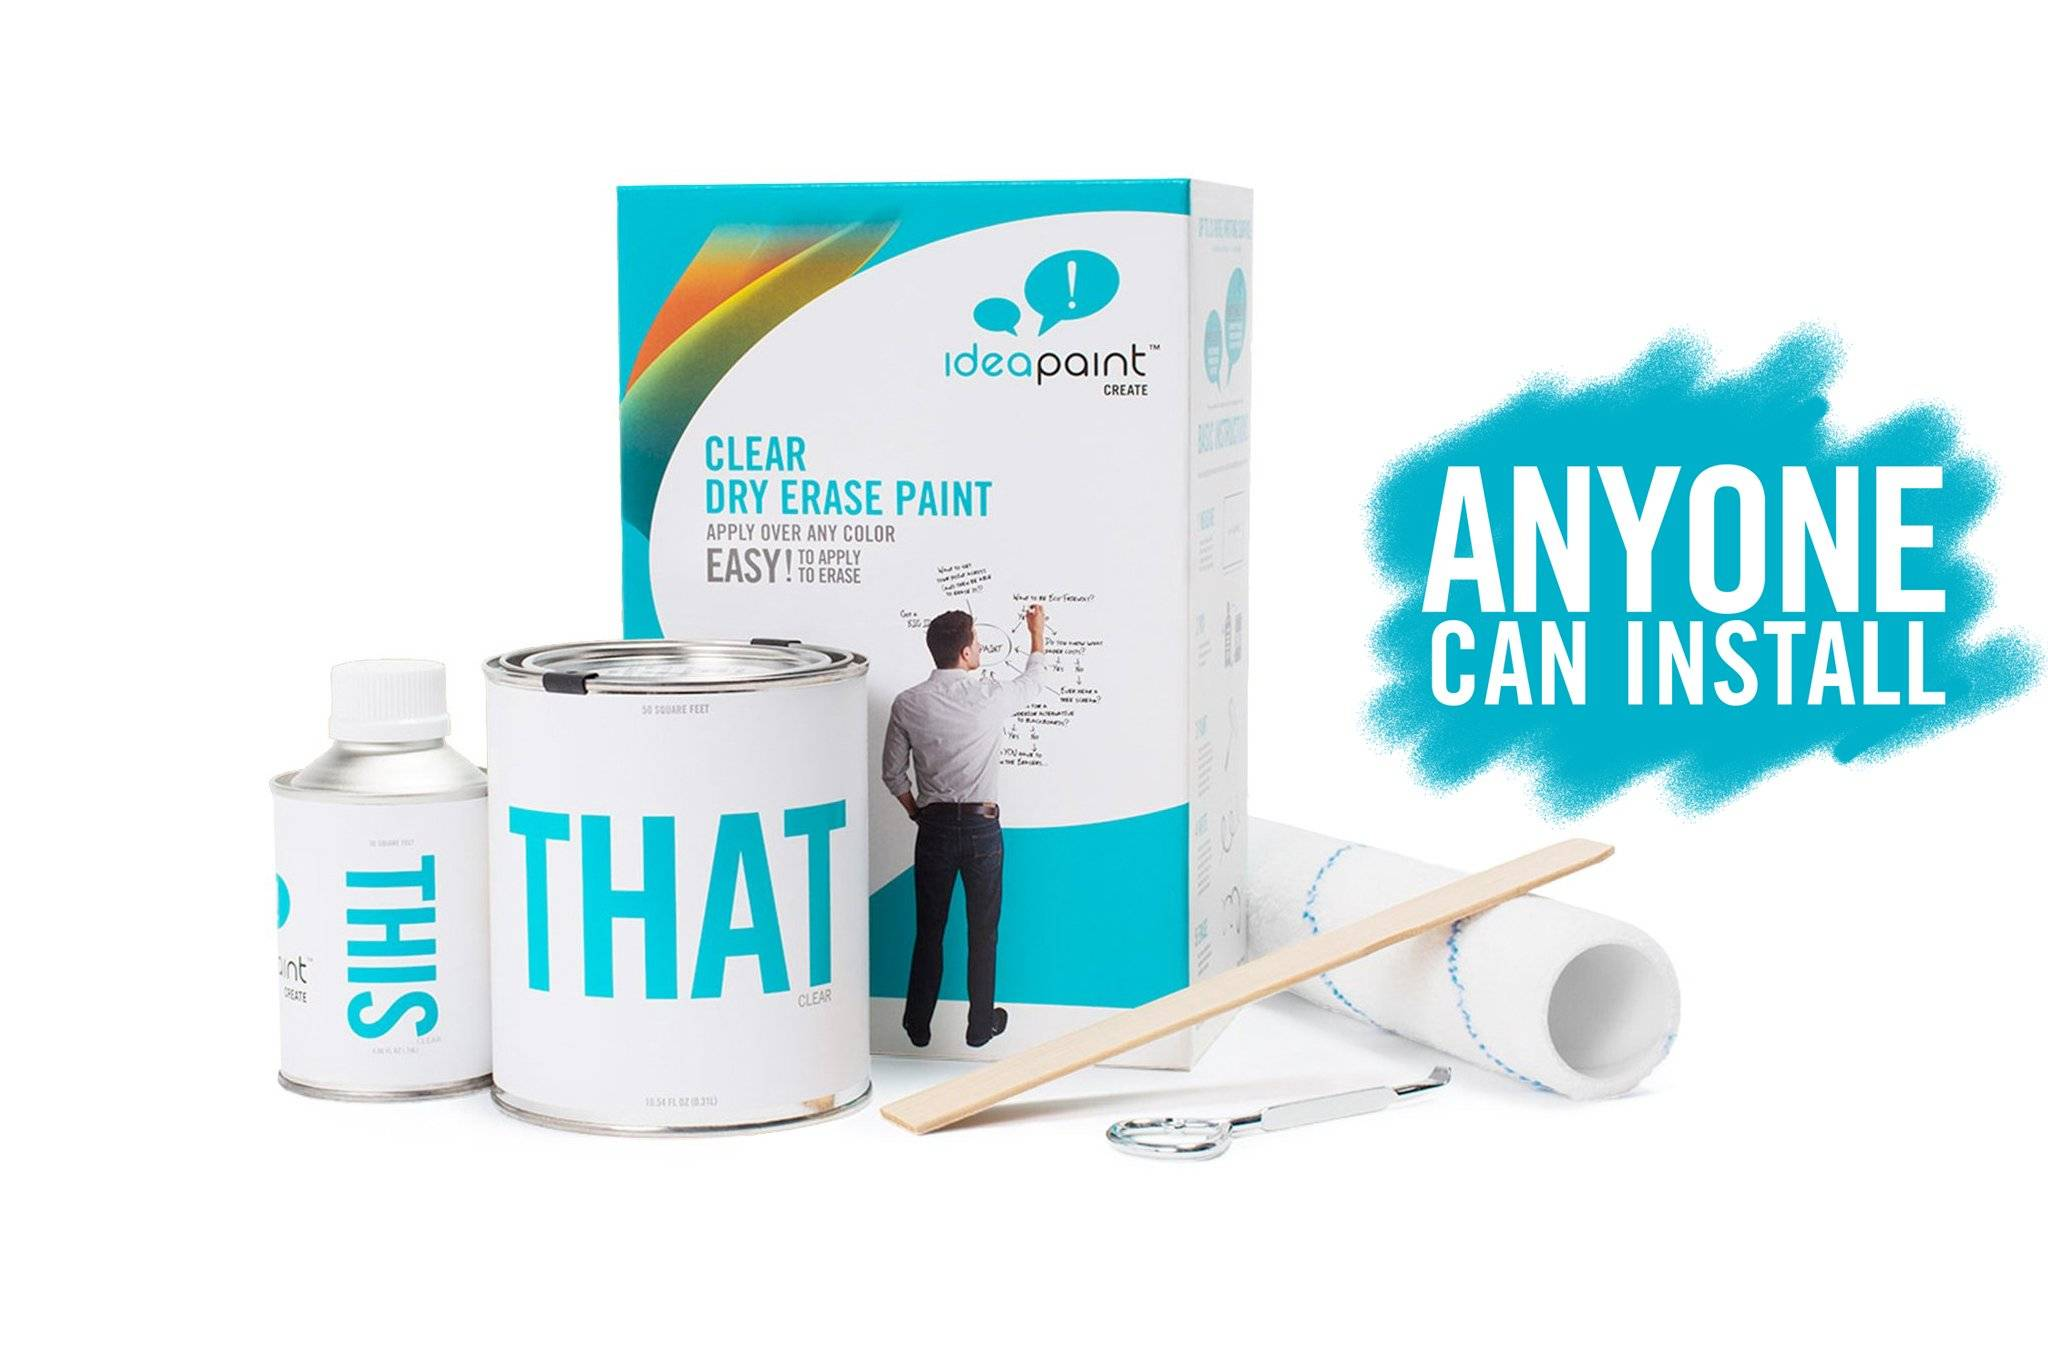 Clear Dry Erase Paint